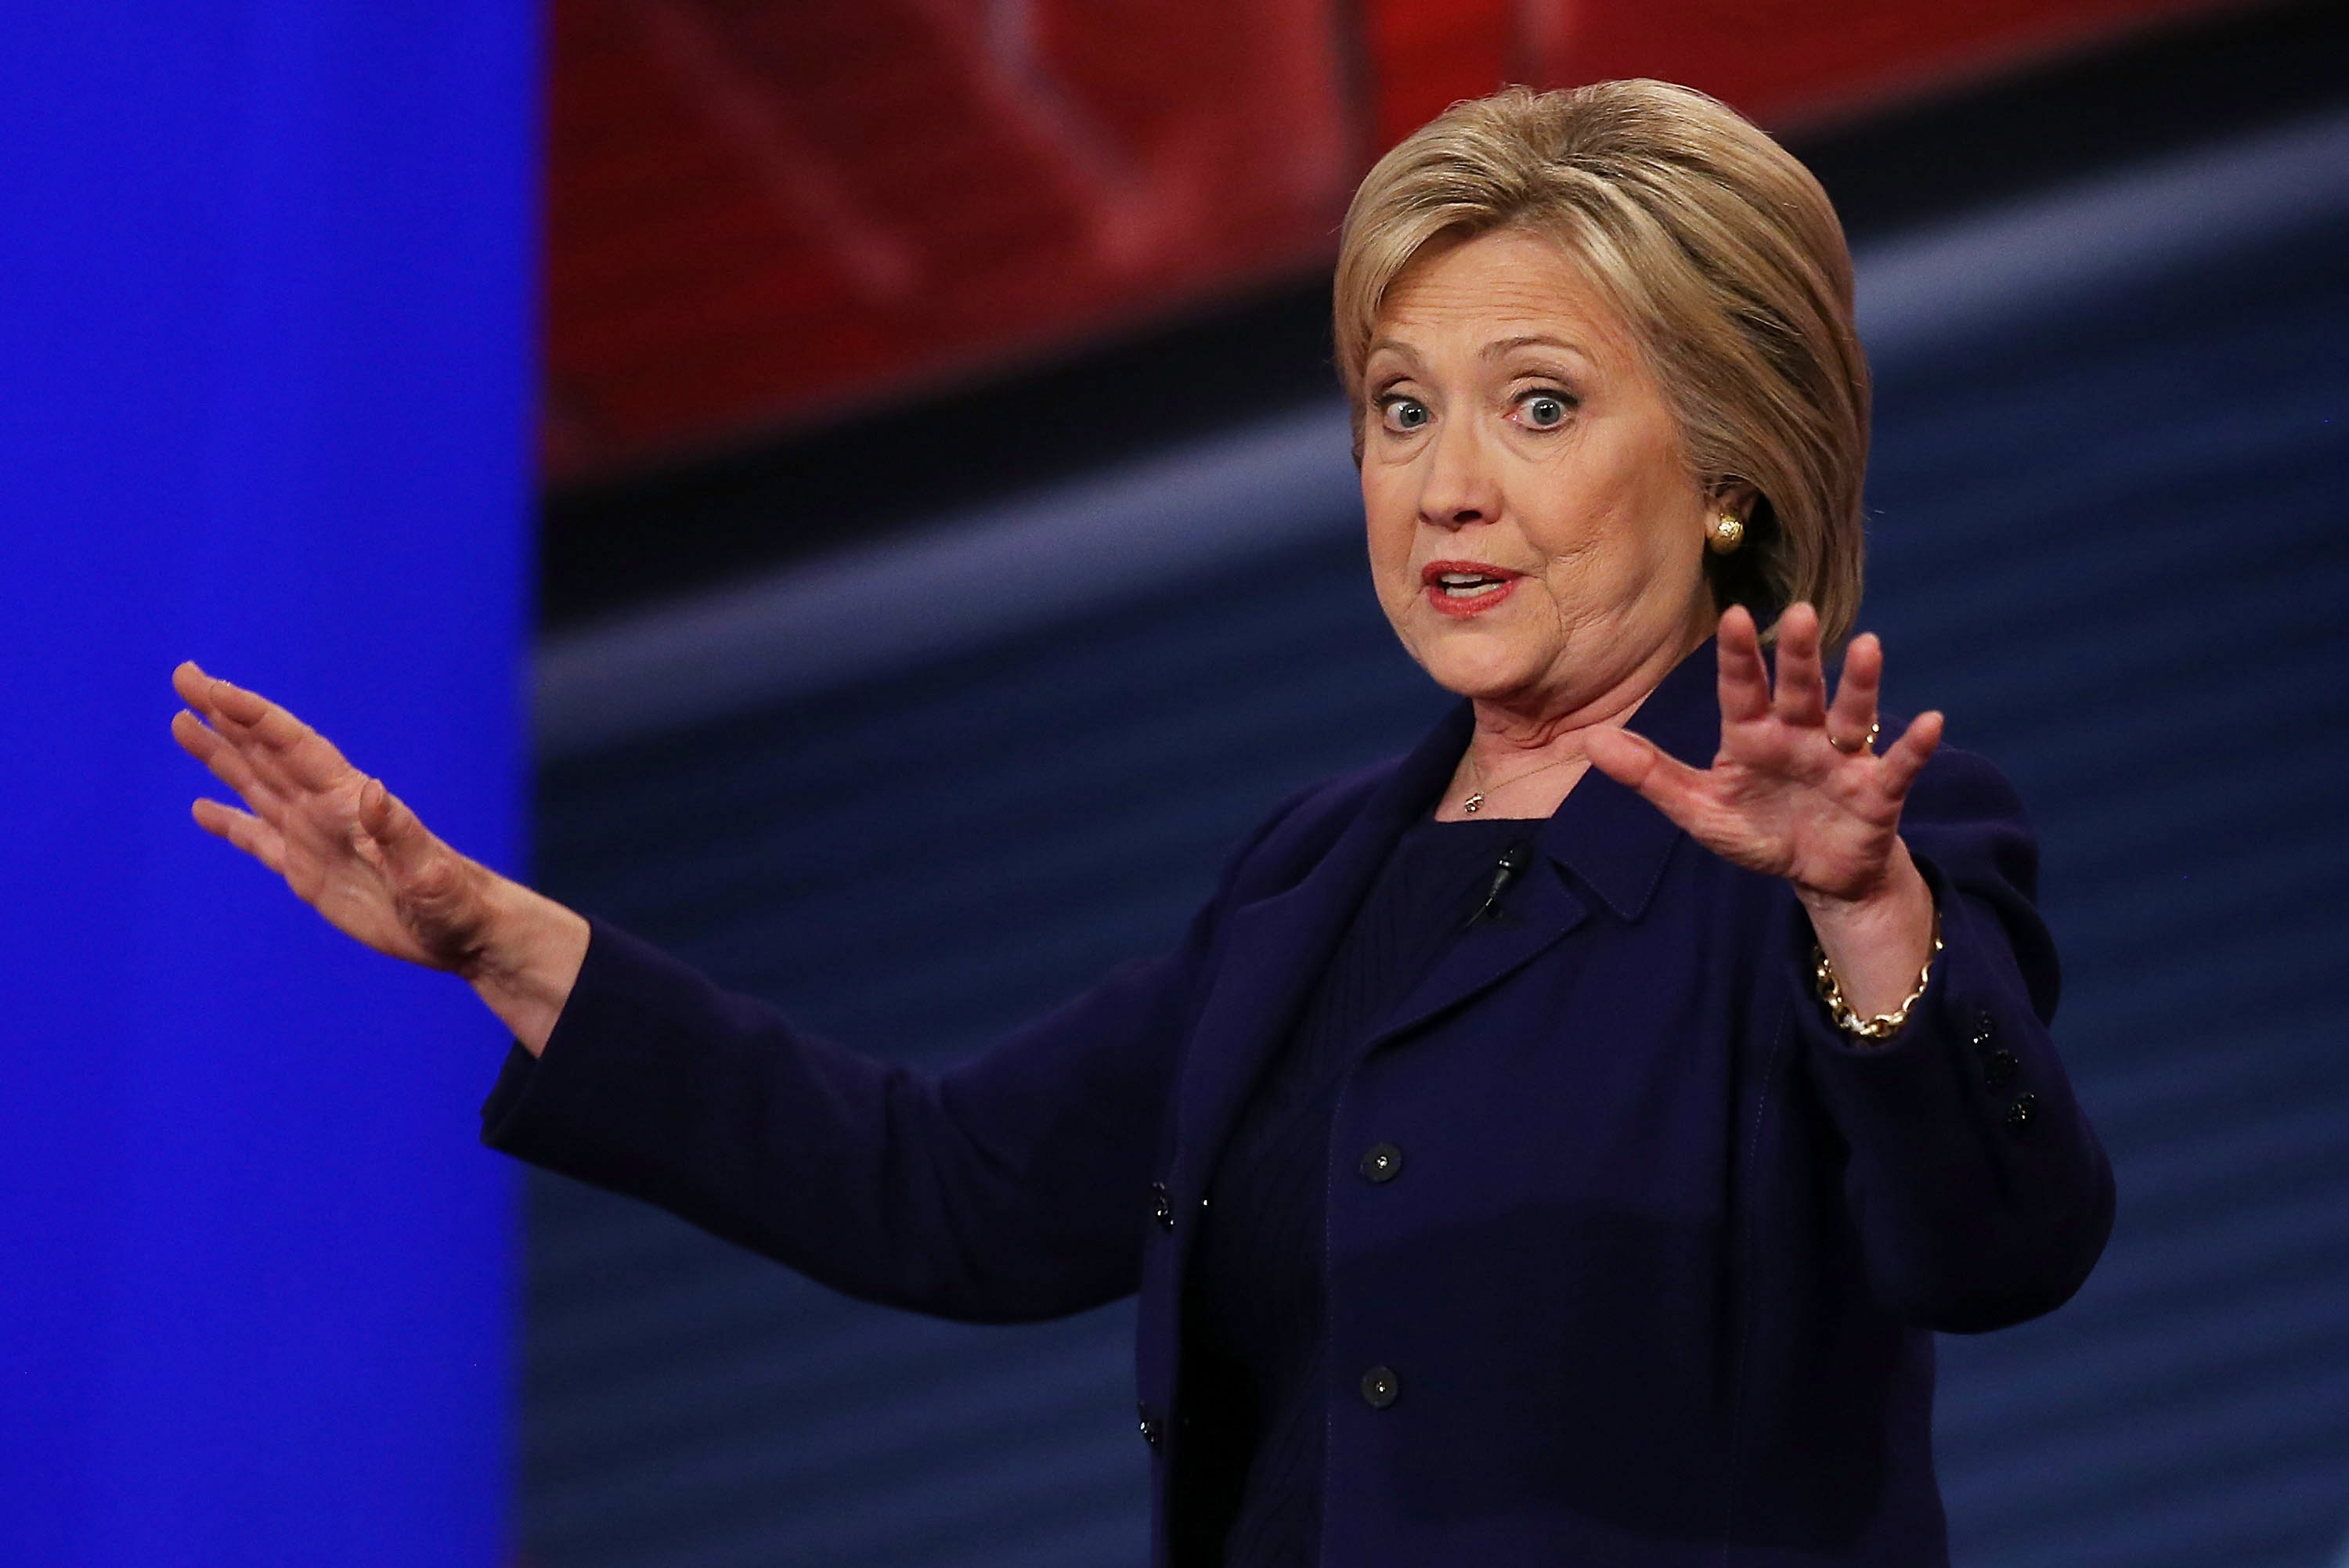 Democratic Presidential candidates Hillary Clinton speaks during a CNN and the New Hampshire Democratic Party hosted Democratic Presidential Town Hall at the Derry Opera House on February 3, 2016 in Derry, New Hampshire.